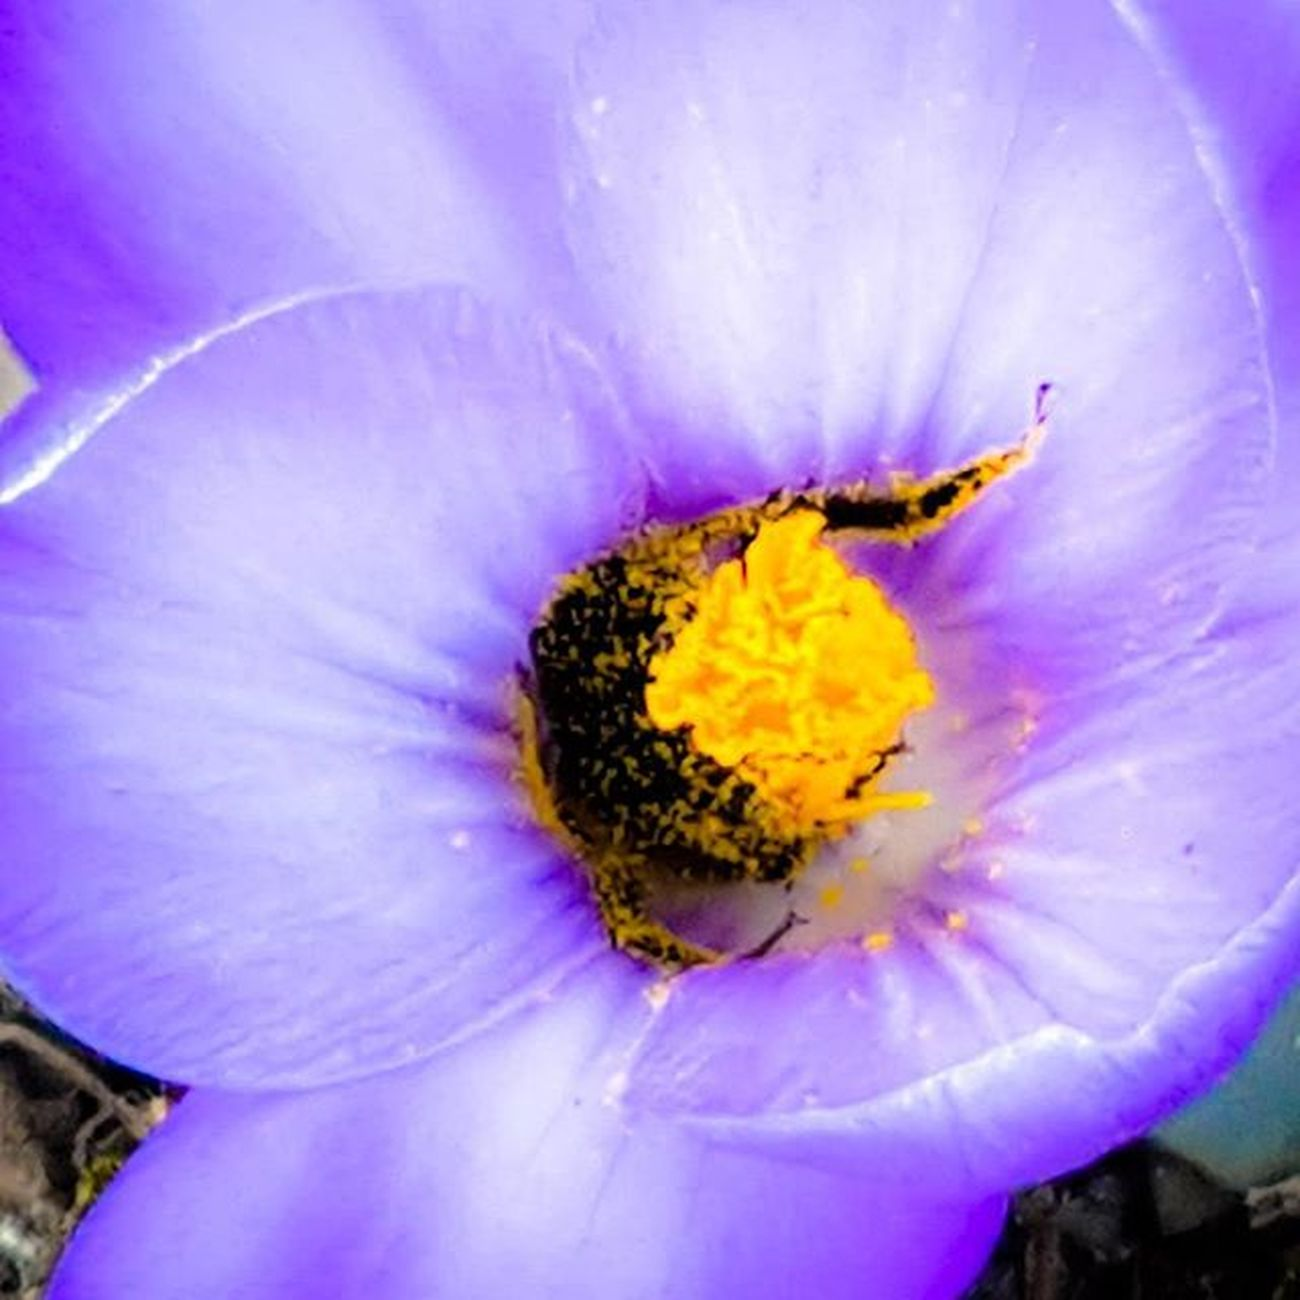 Bumble at Work Bumblebee Honey Bee Pollen Pollenator Crocus Purple Yellow Flowers Nature Birdsandbees Beeatwork Macrolife Tv Tv_nature Purplecrayon HDR OnlyinMN Mn Exploretheoutdoors